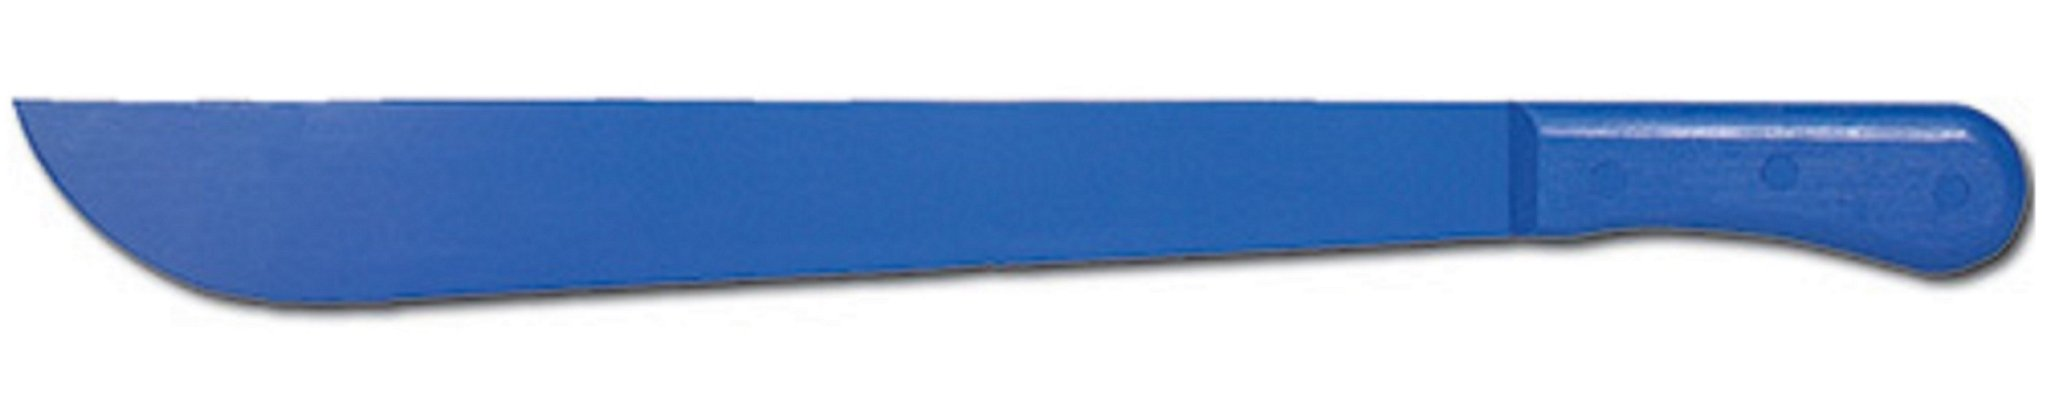 Blueguns Machete Simulator Blue - CHK-SHIELD | Outdoor Army - Tactical Gear Shop